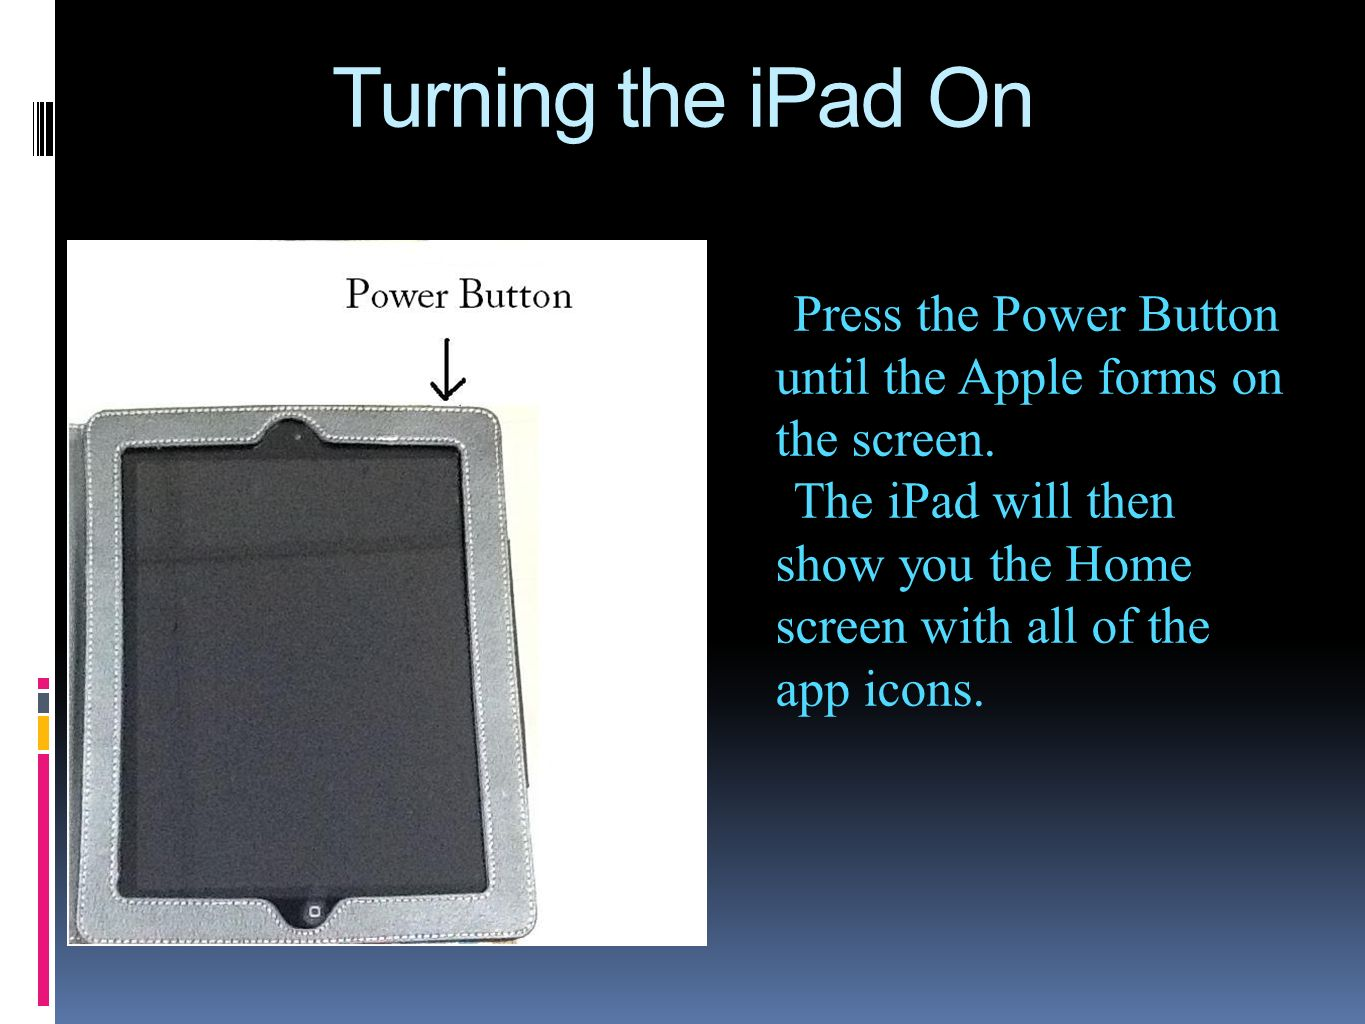 Turning the iPad On Press the Power Button until the Apple forms on the screen. The iPad will then show you the Home screen with all of the app icons.